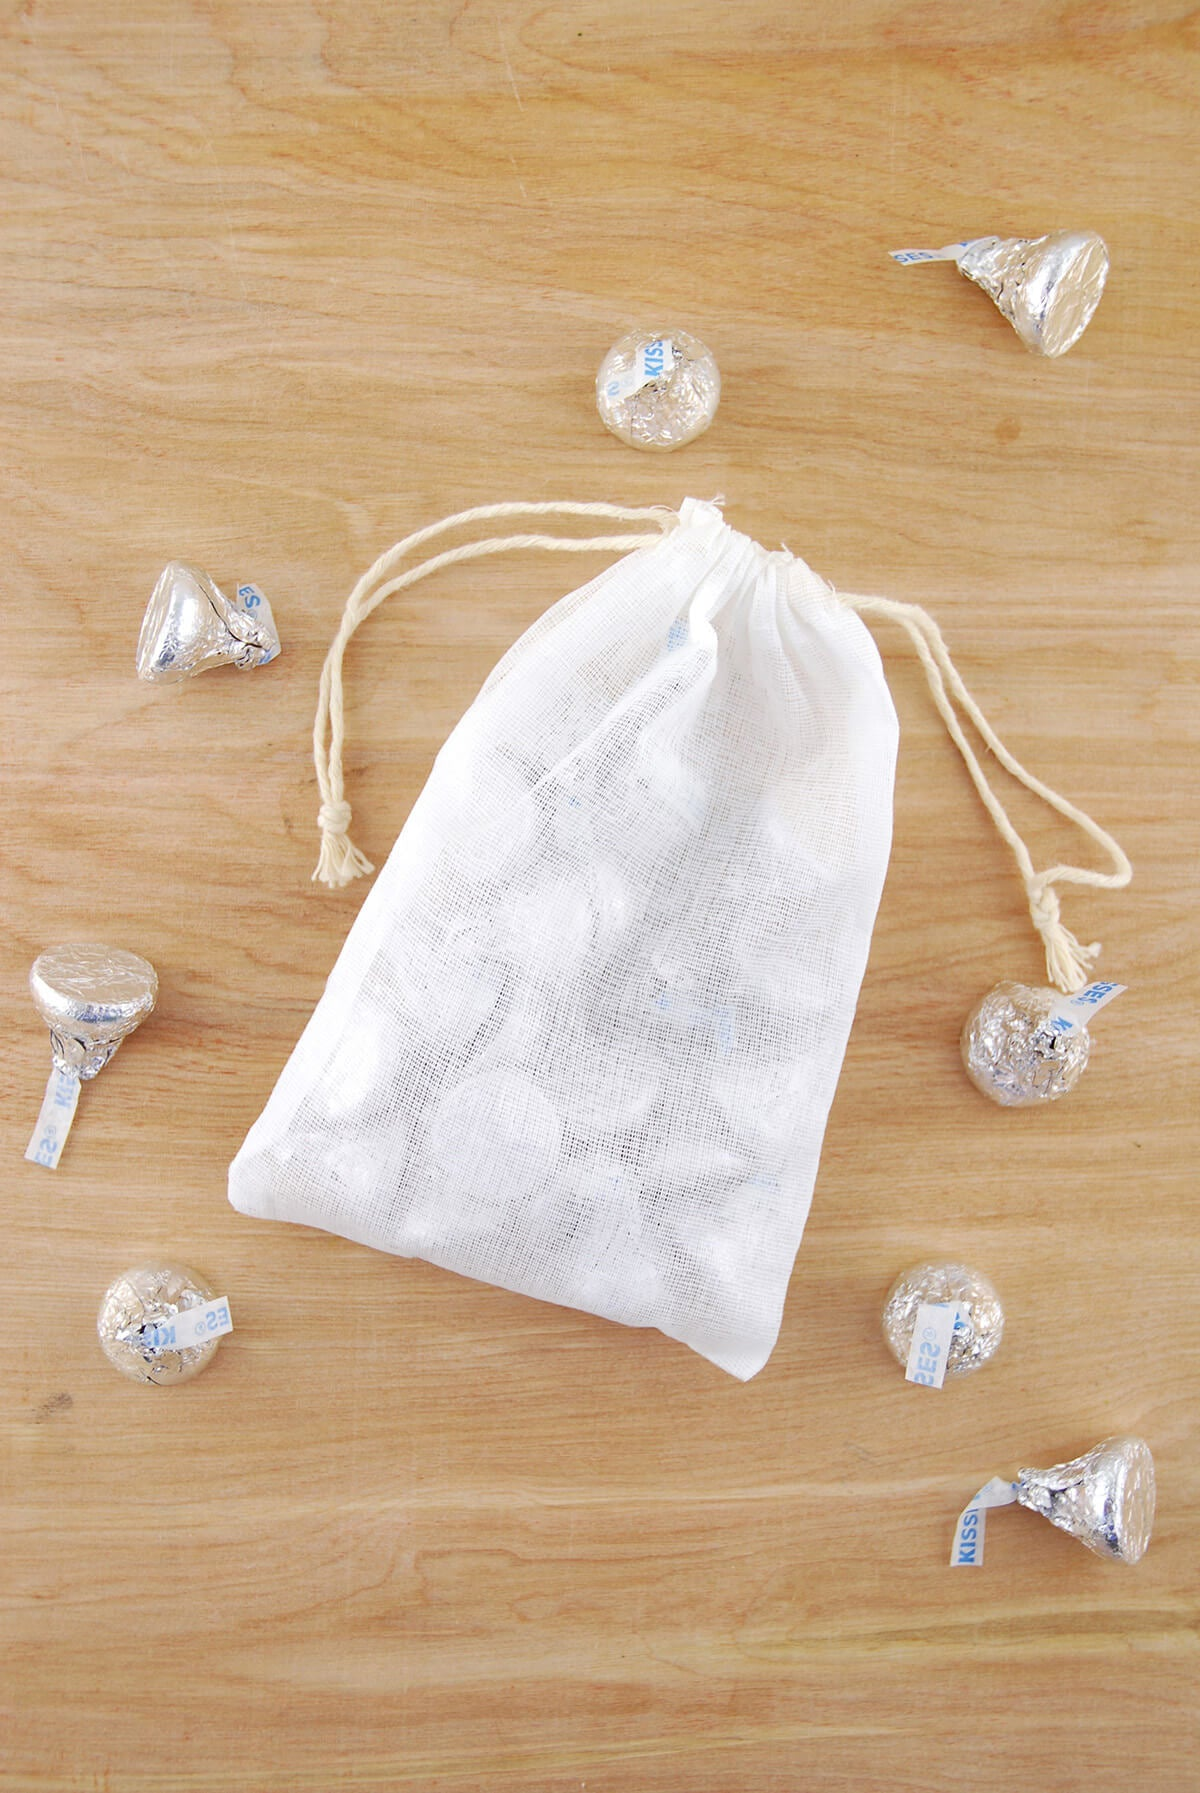 12 Cotton 4x6 Drawstring Favor Bags